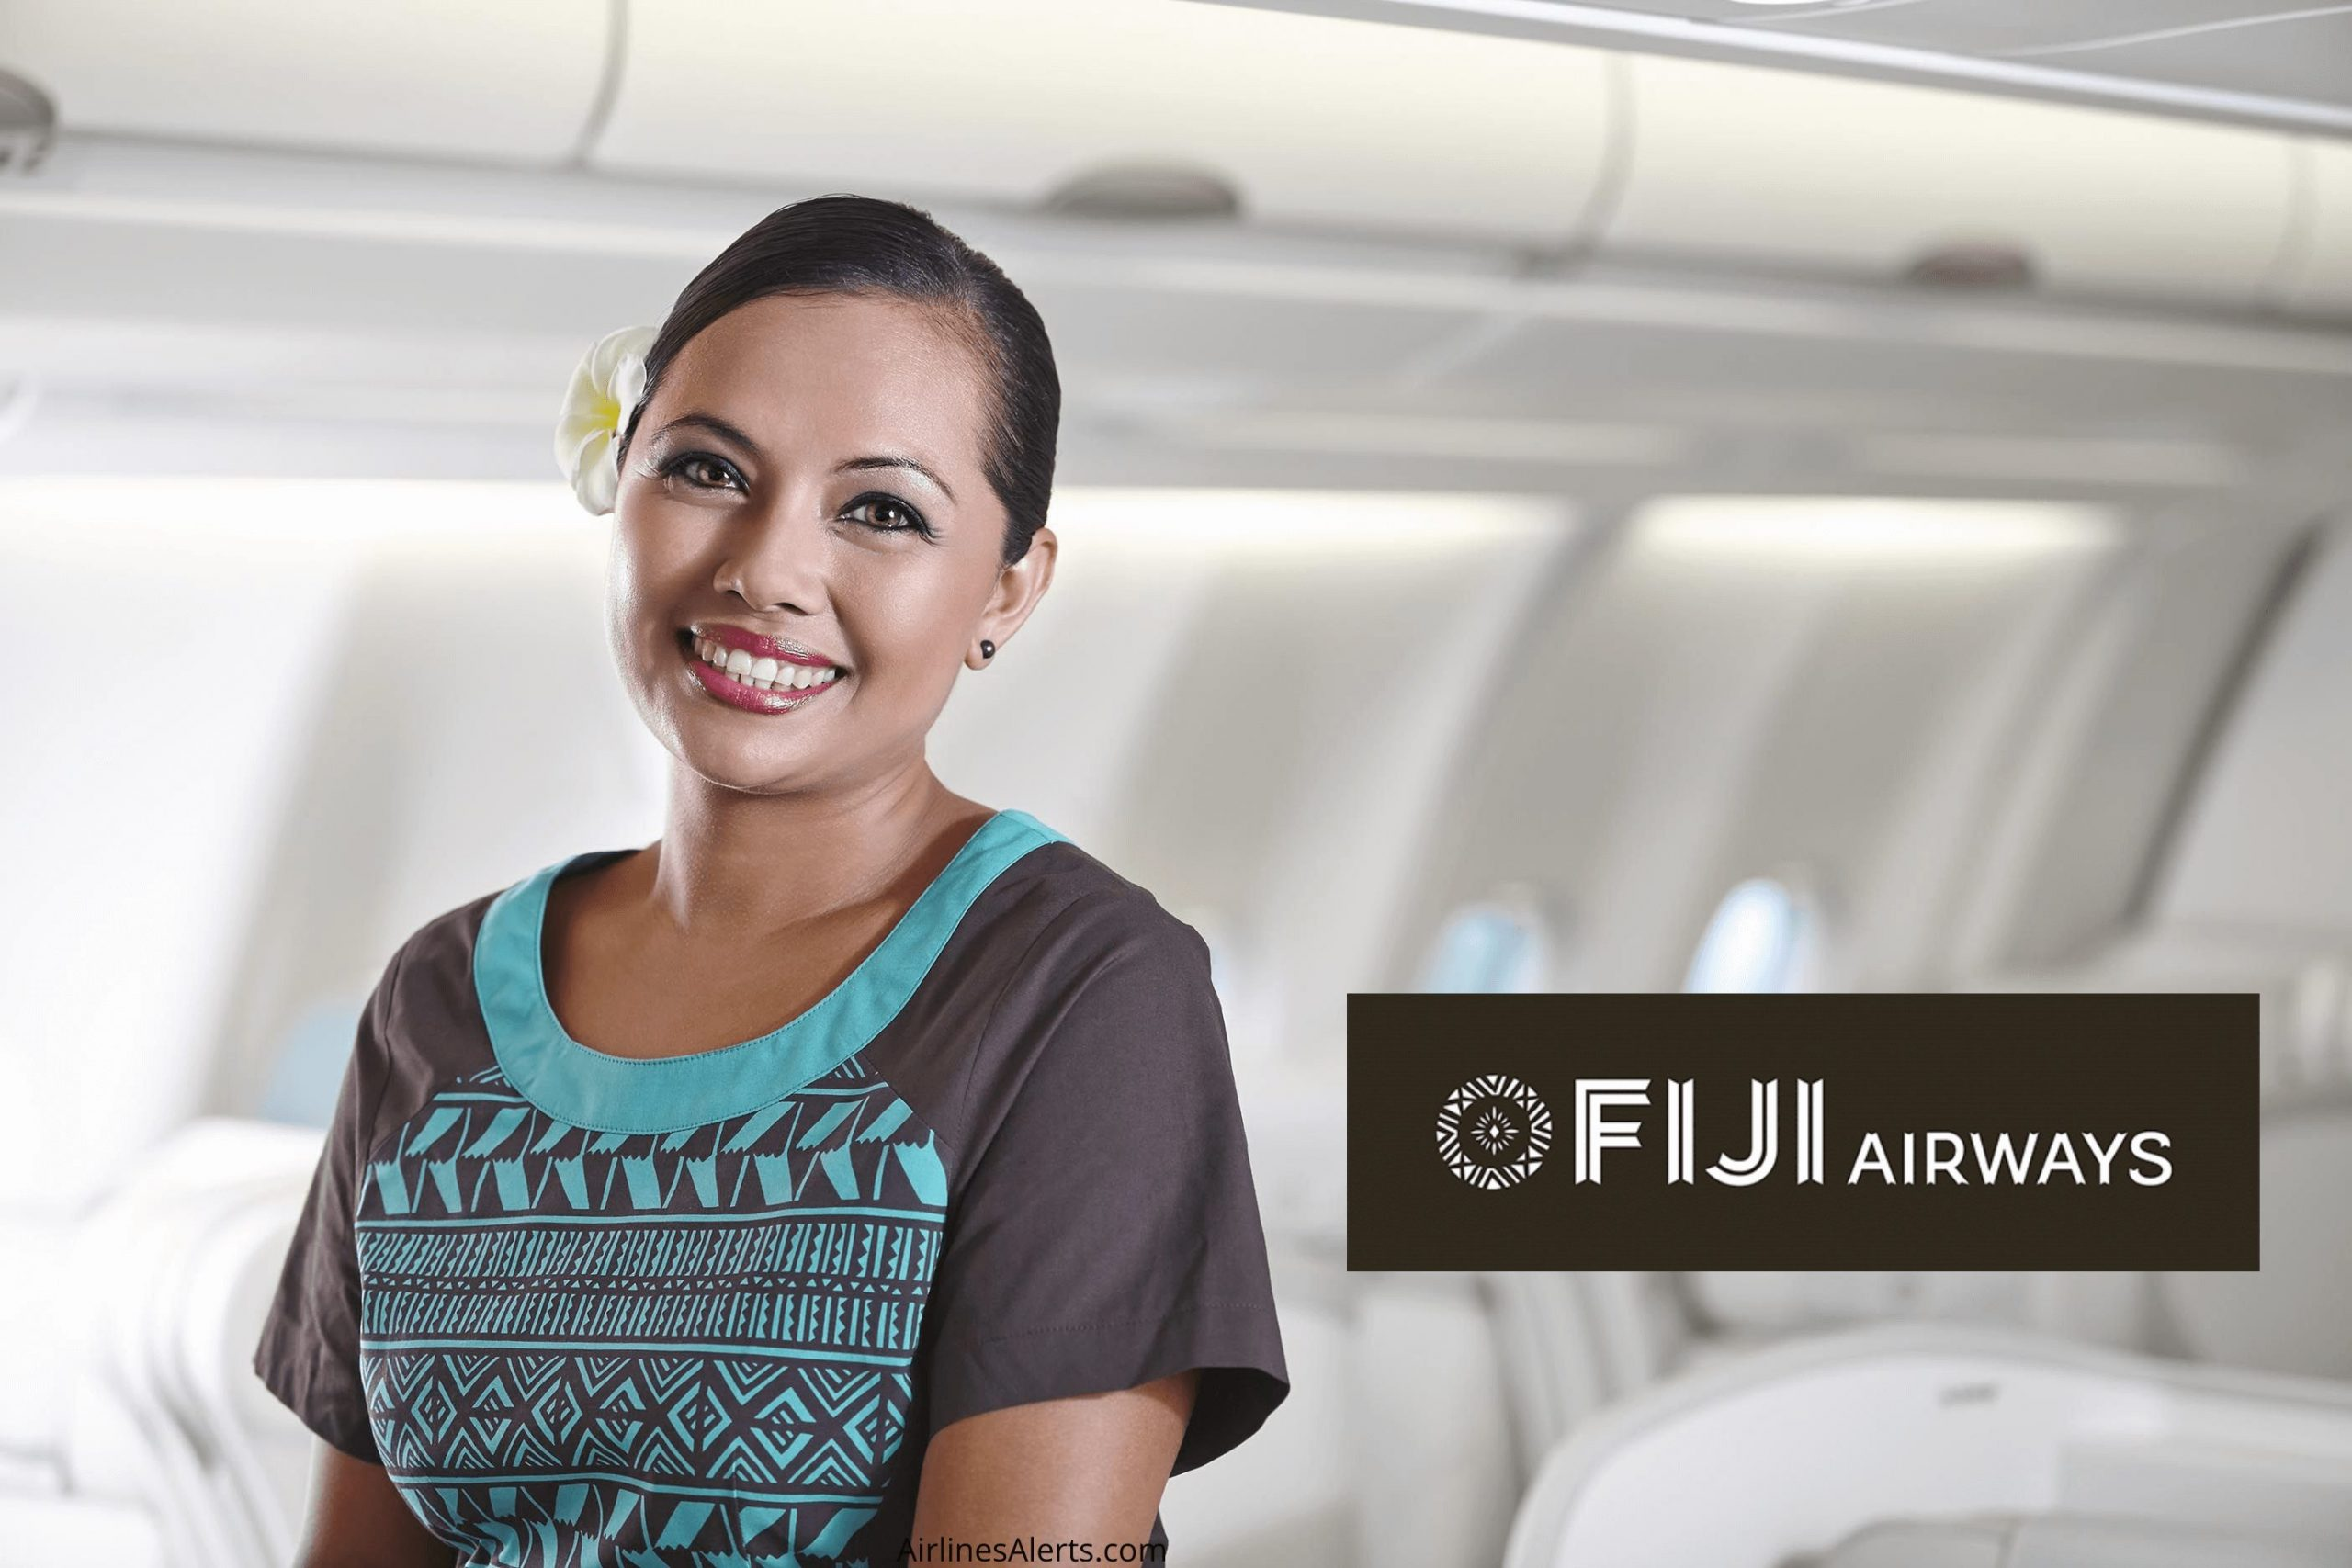 FIJI Airways Cabin Crew Recruitment 2021 - Check Details & Apply